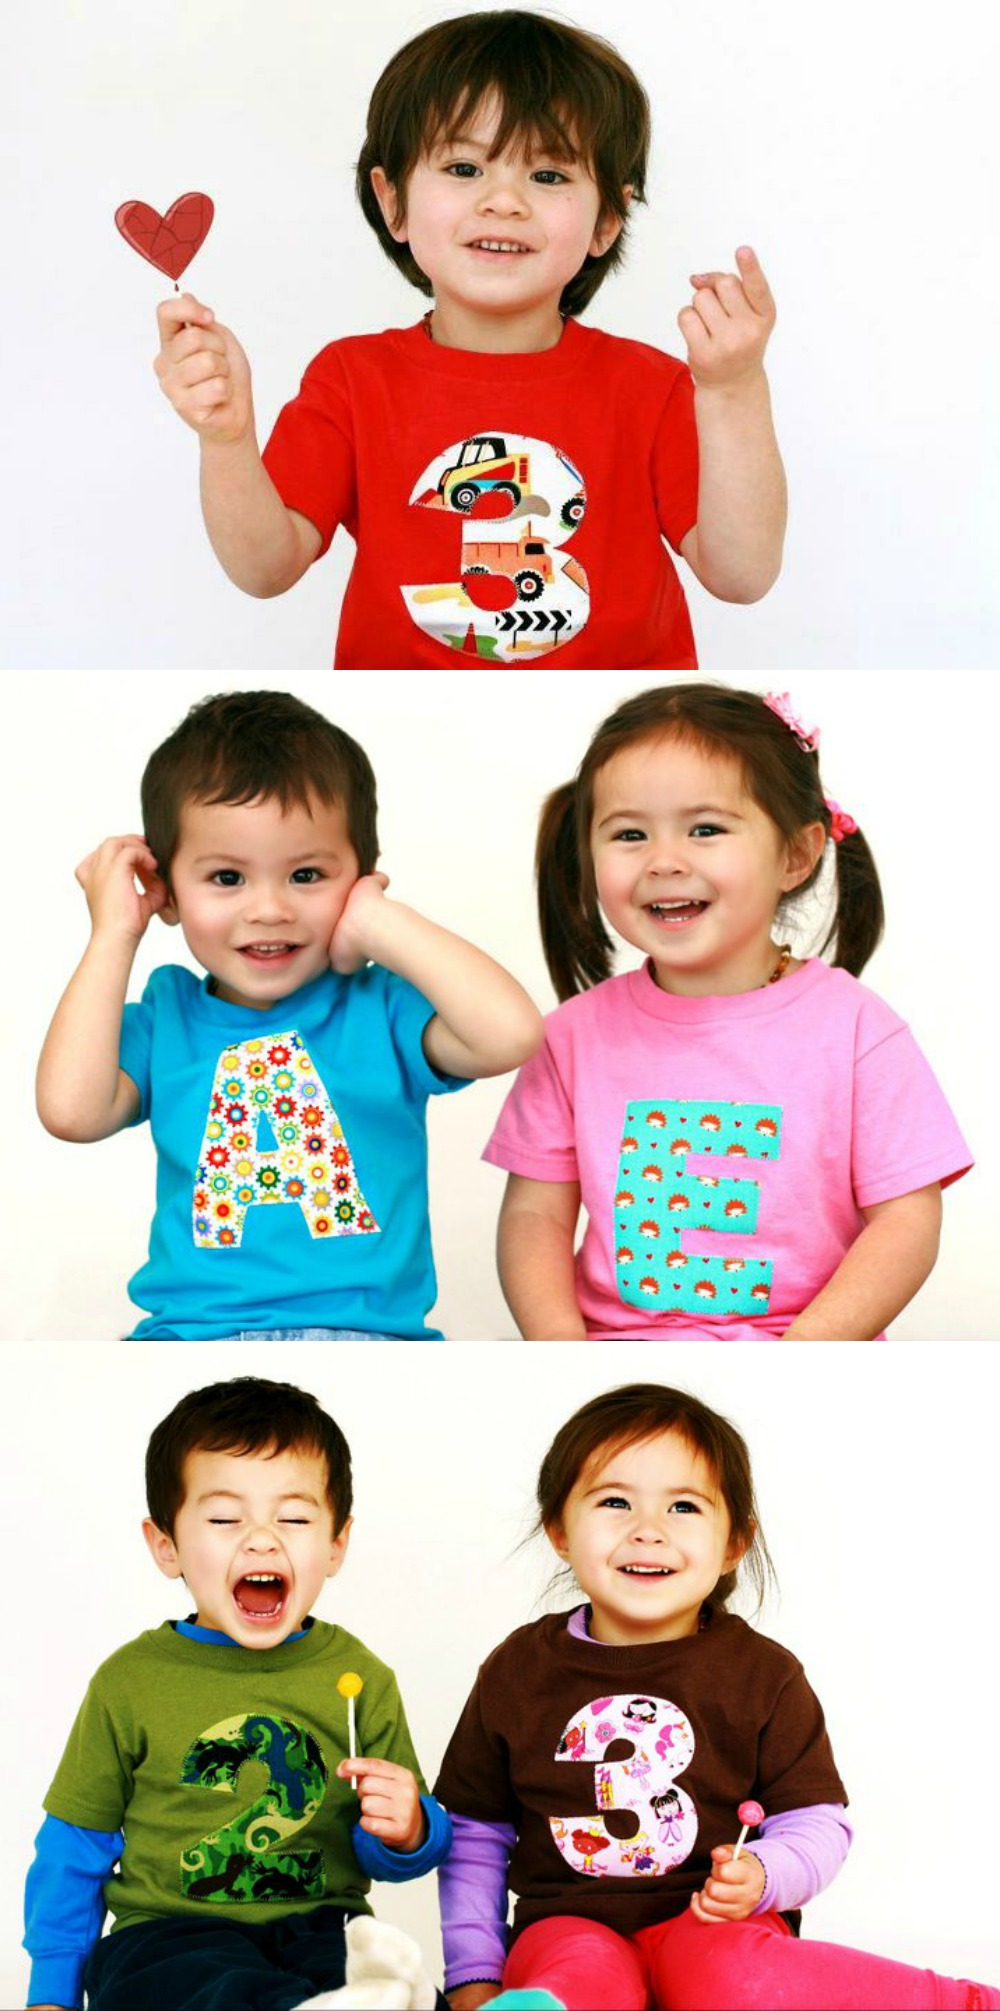 Learn How To Make A Appliqued Letter Or Number Birthday Shirt With This Simple Tutorial